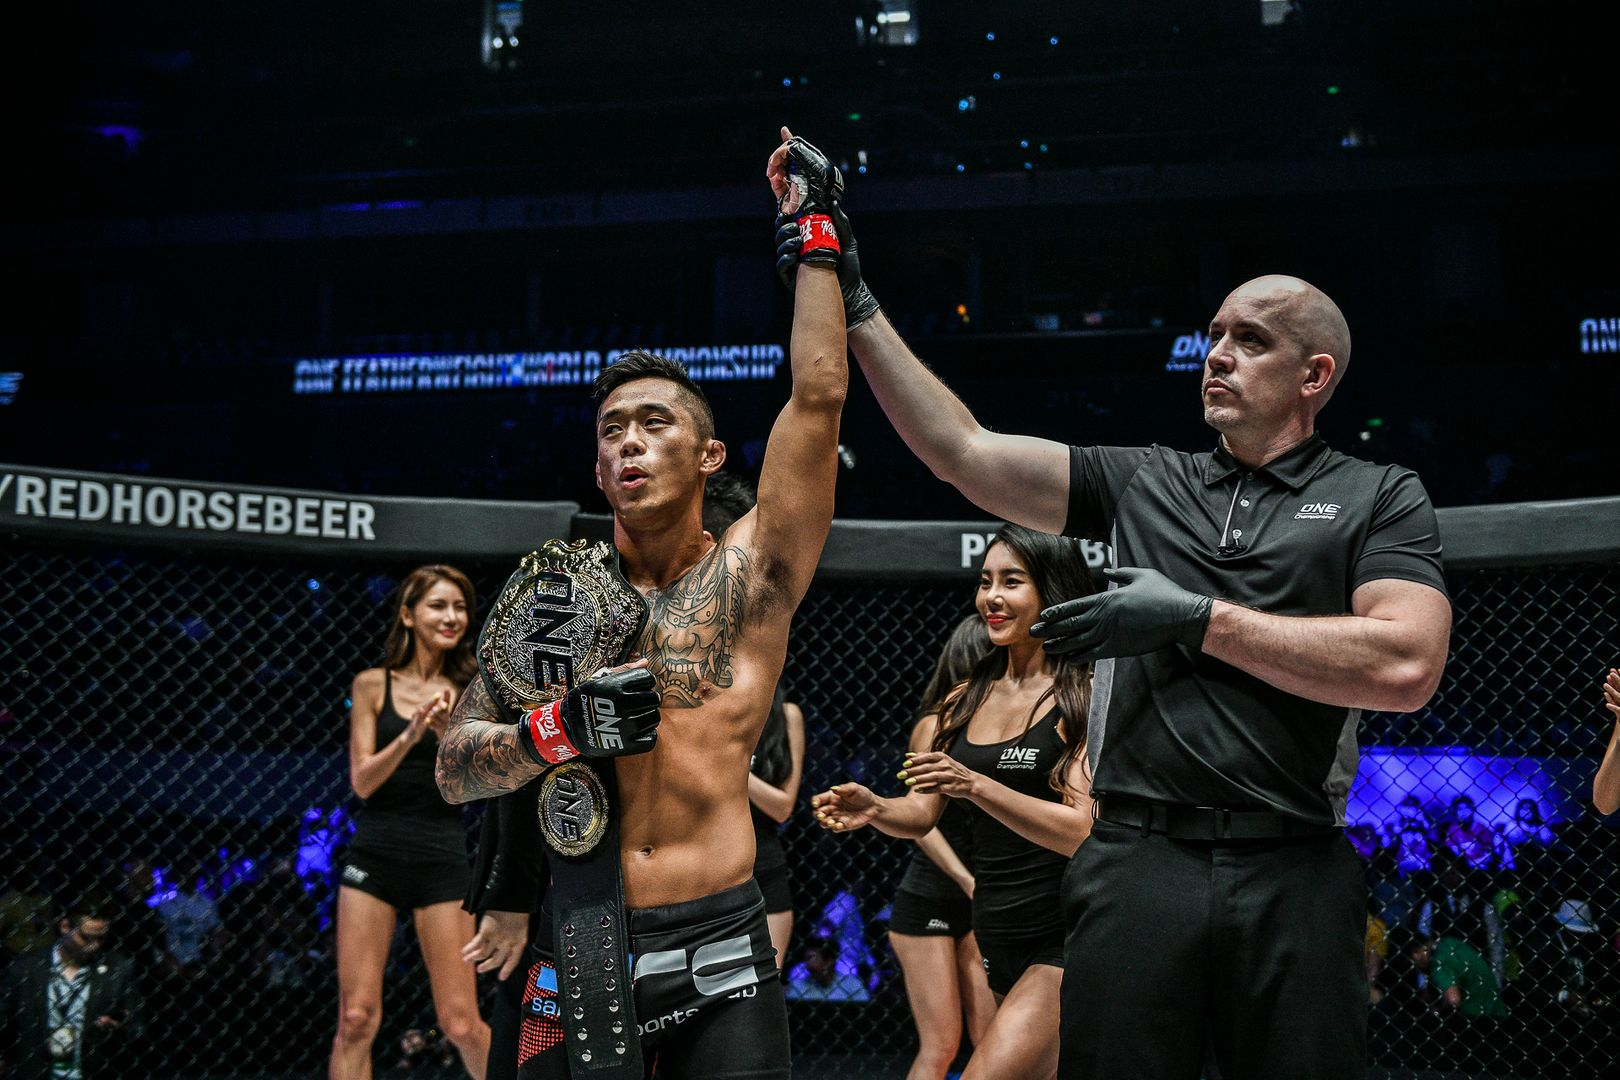 ONE Featherweight World Champion Martin Nguyen defends his belt